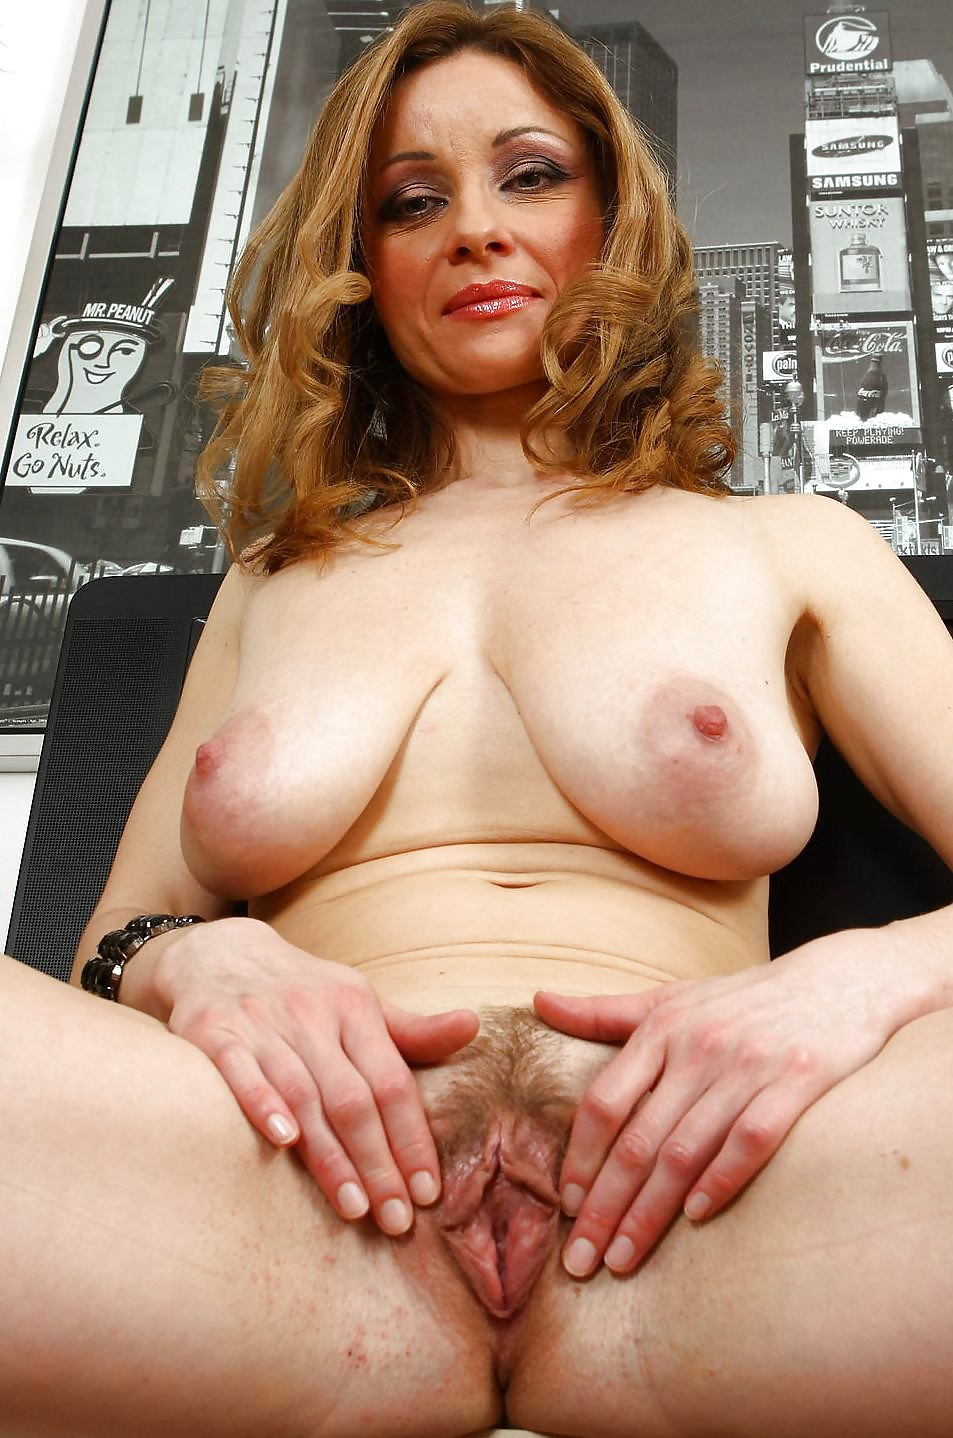 her-mothers-pussy-and-tits-funny-and-sexy-pron-pic